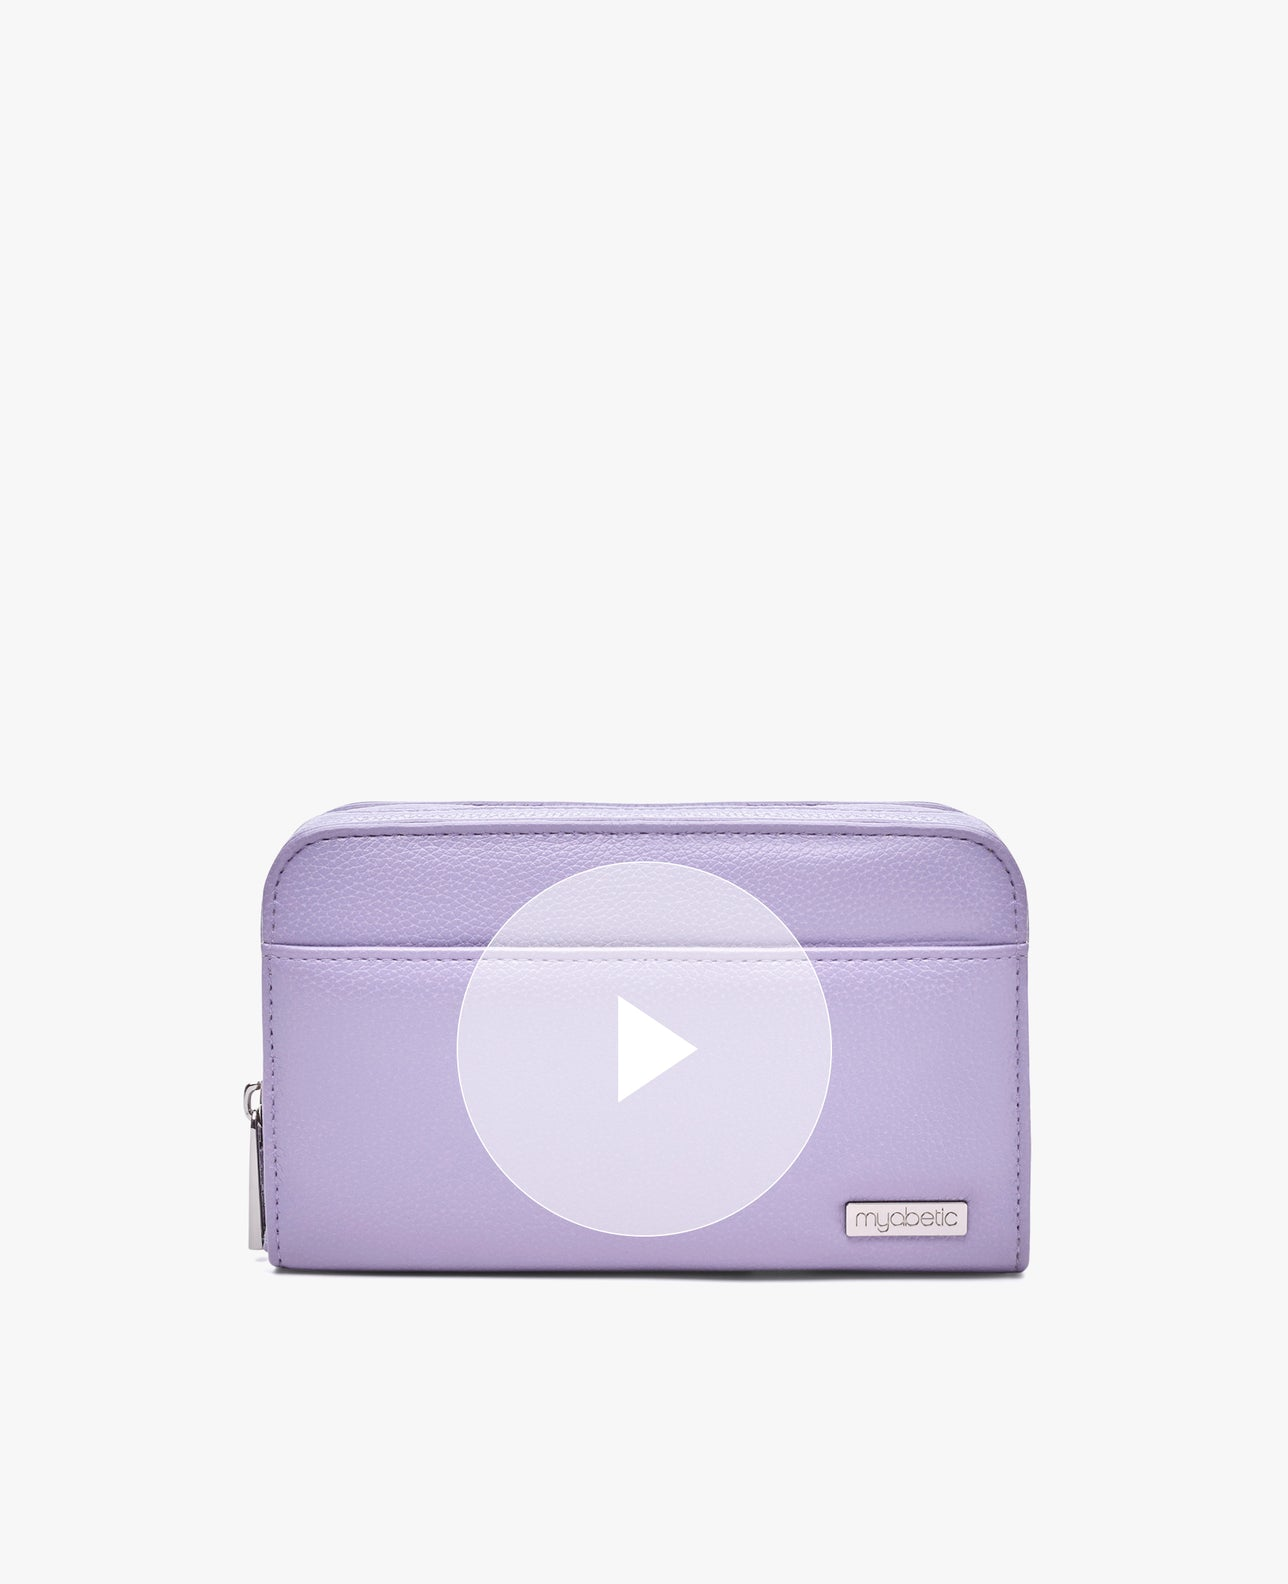 Color:Lavender  https://youtube.com/embed/MBFAP4Blrhg